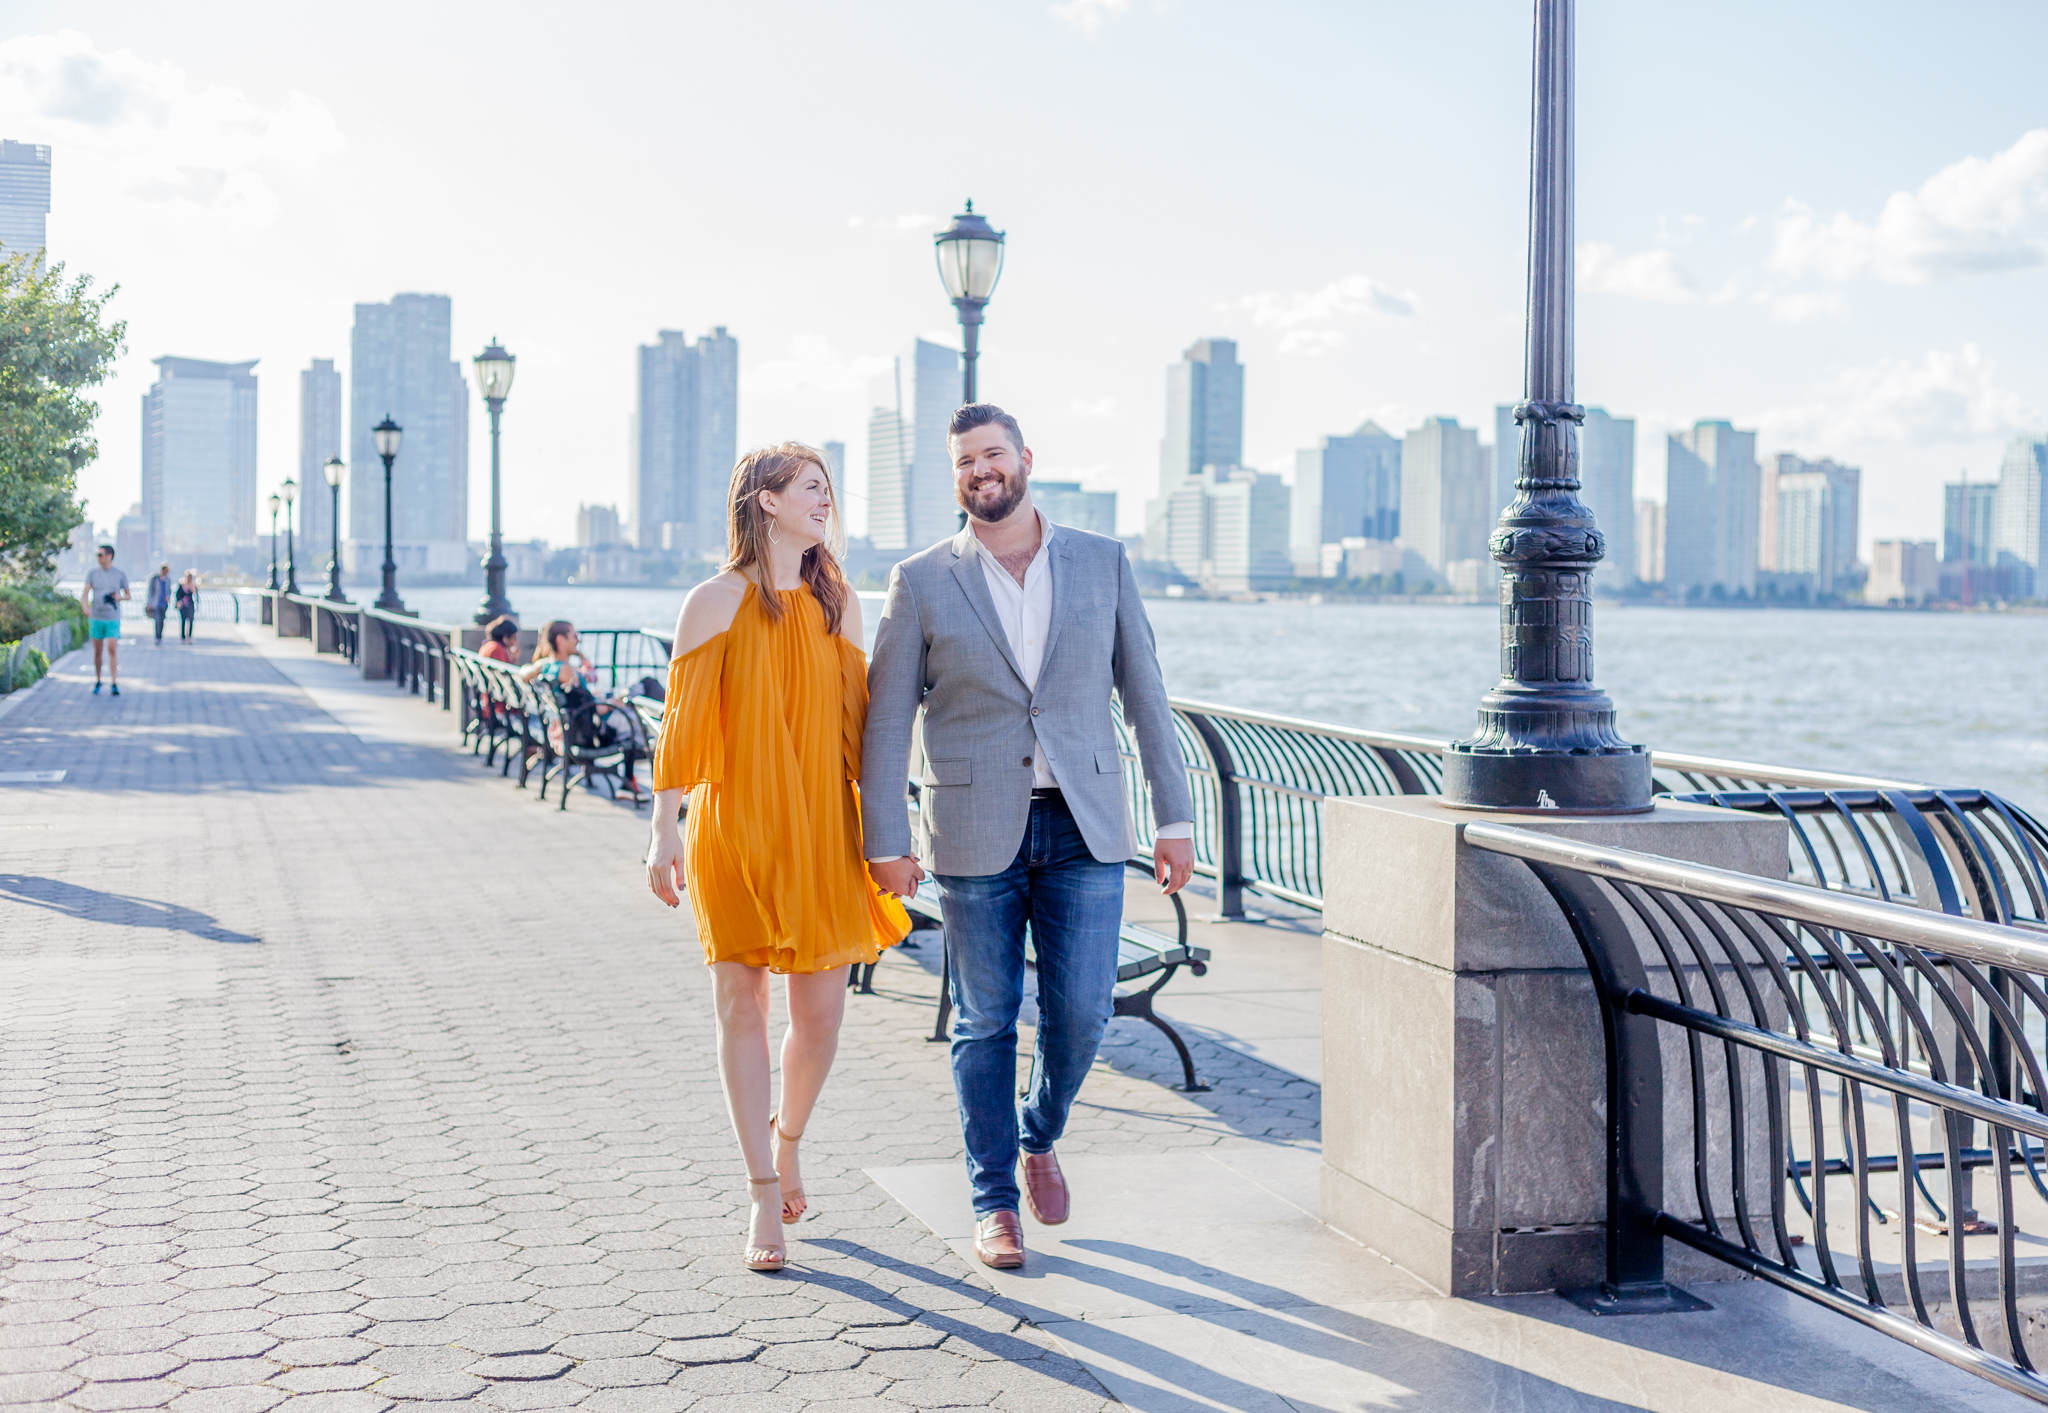 bb dakota gretal dress, nyfw, ss18, david coe photo, lower manhattan, TriBeCa, what we learned during our first year of marriage, wedding, relationship tips